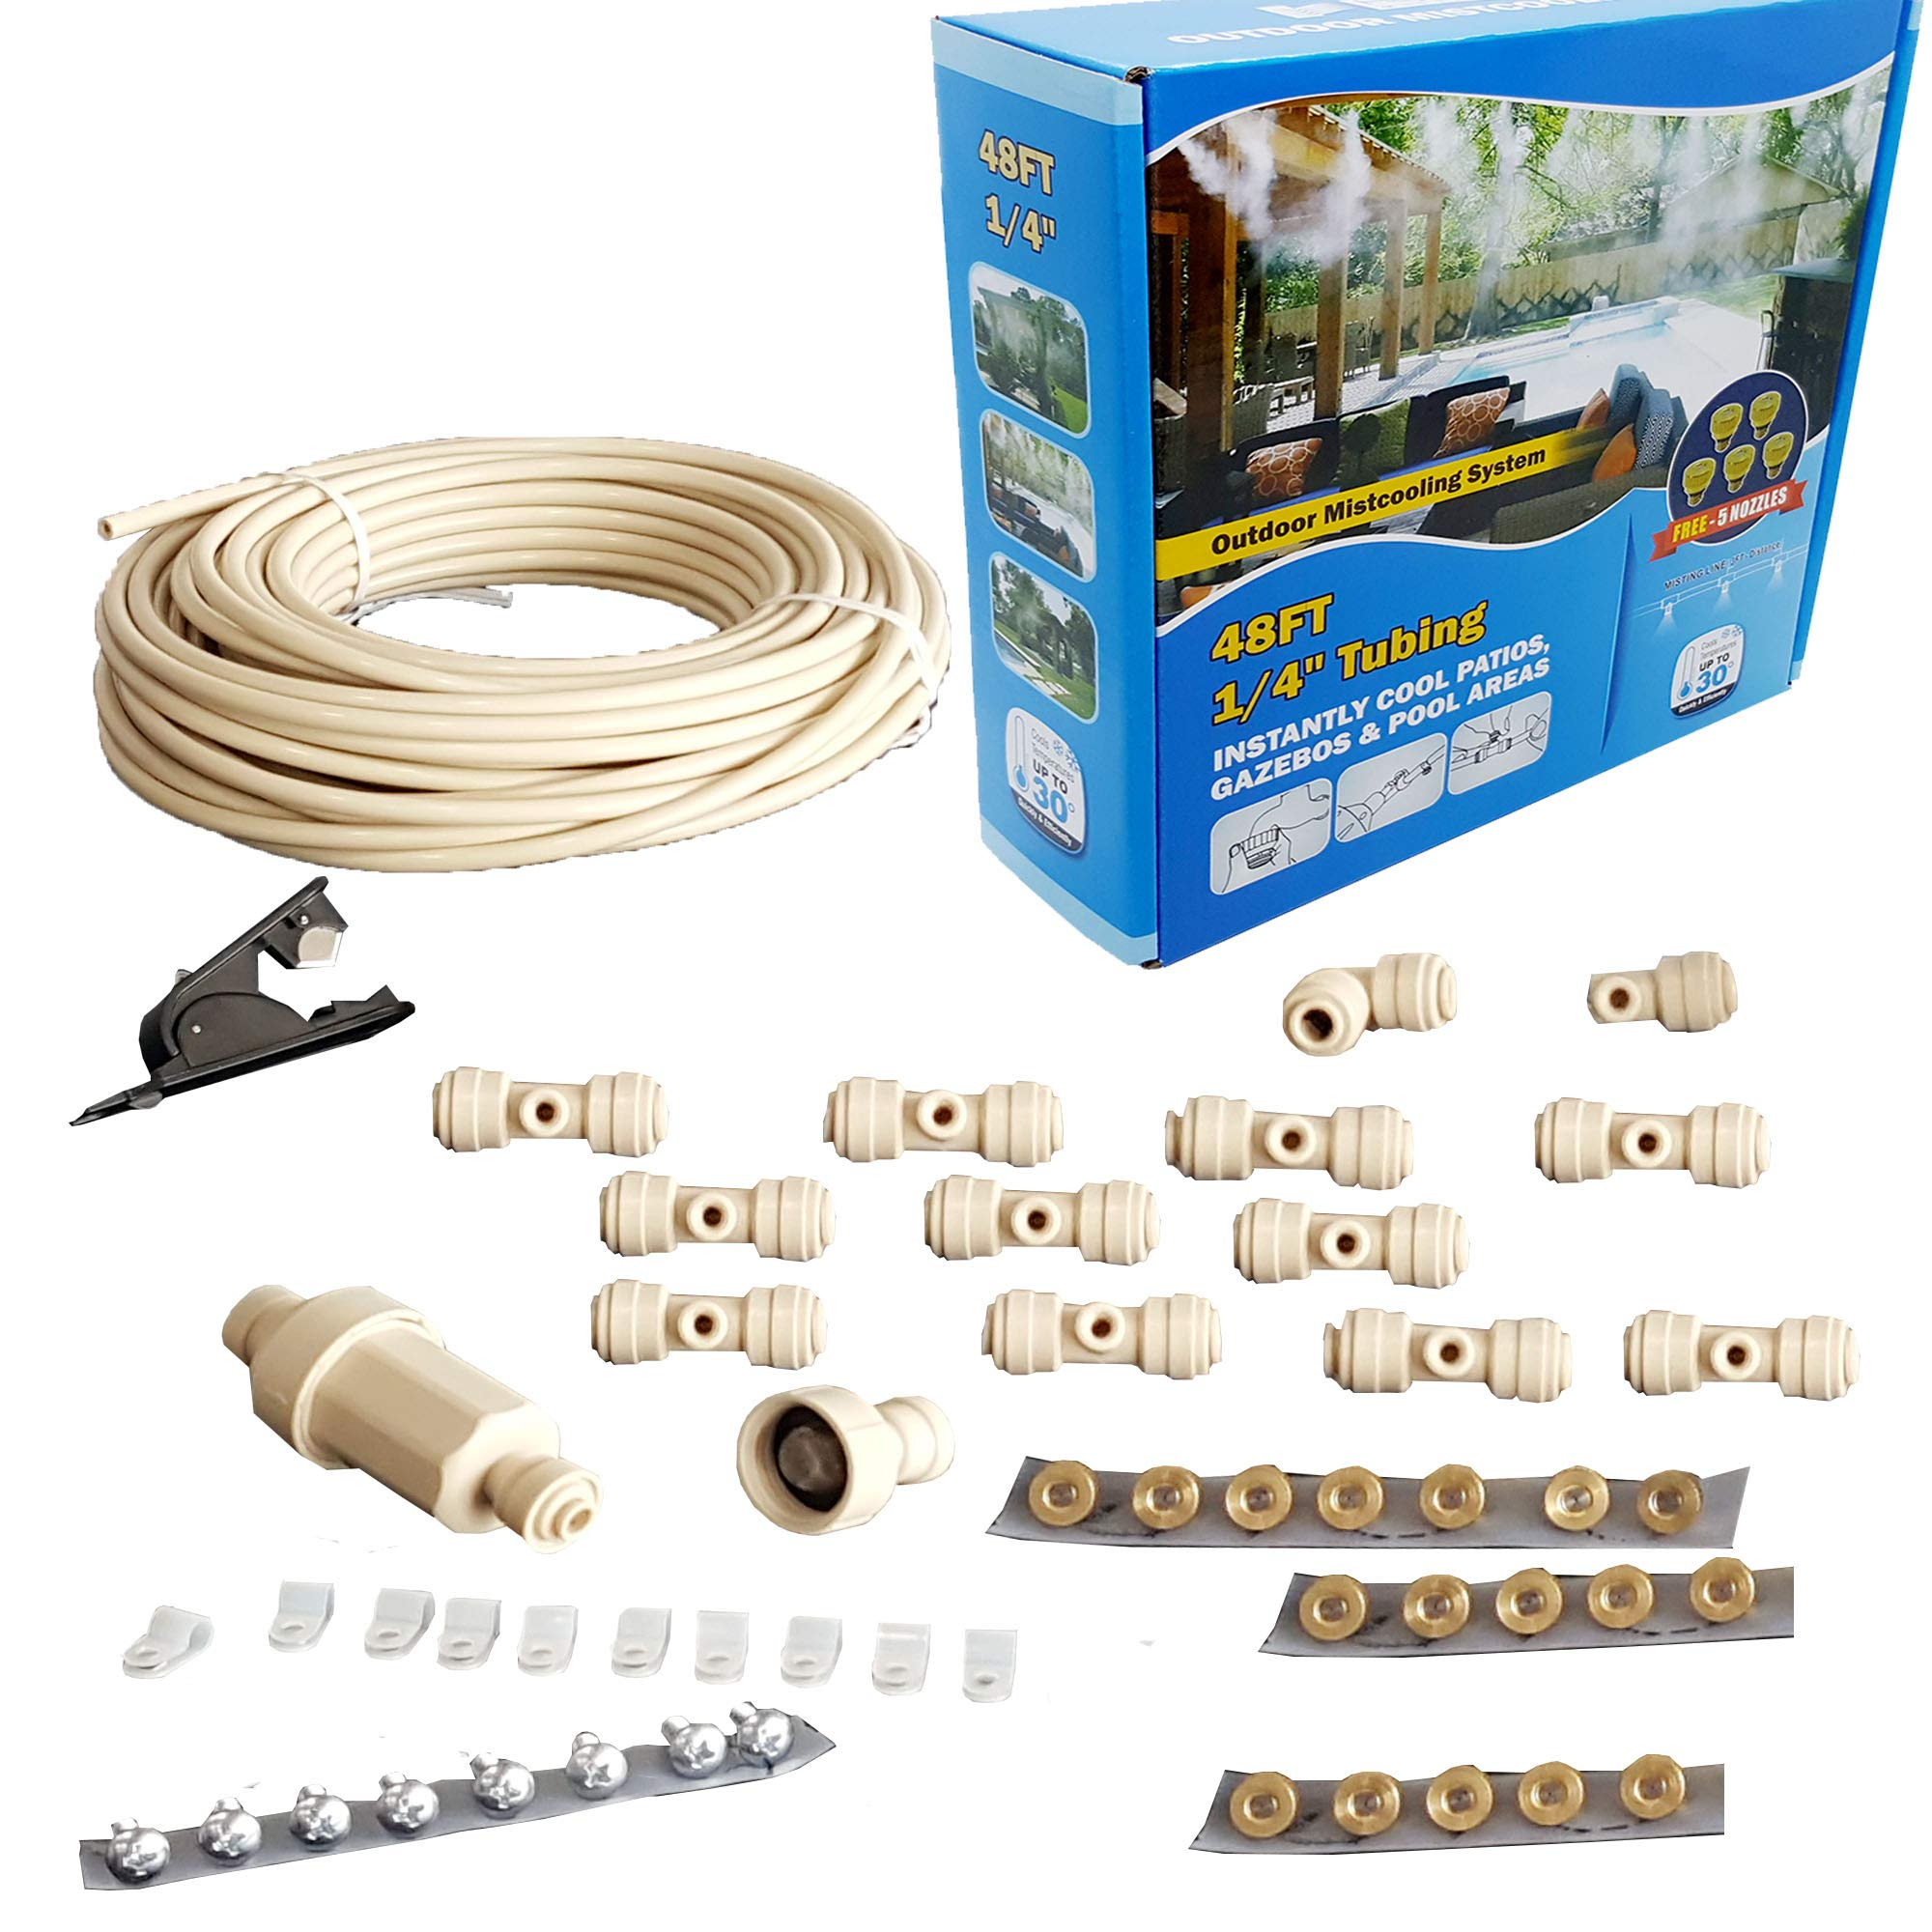 mistcooling - Patio Misting Kit Assembly - Make Your own Misting System - Easy to Build and Install - 5 Minute Installation (48Ft -12 Nozzles) by mistcooling